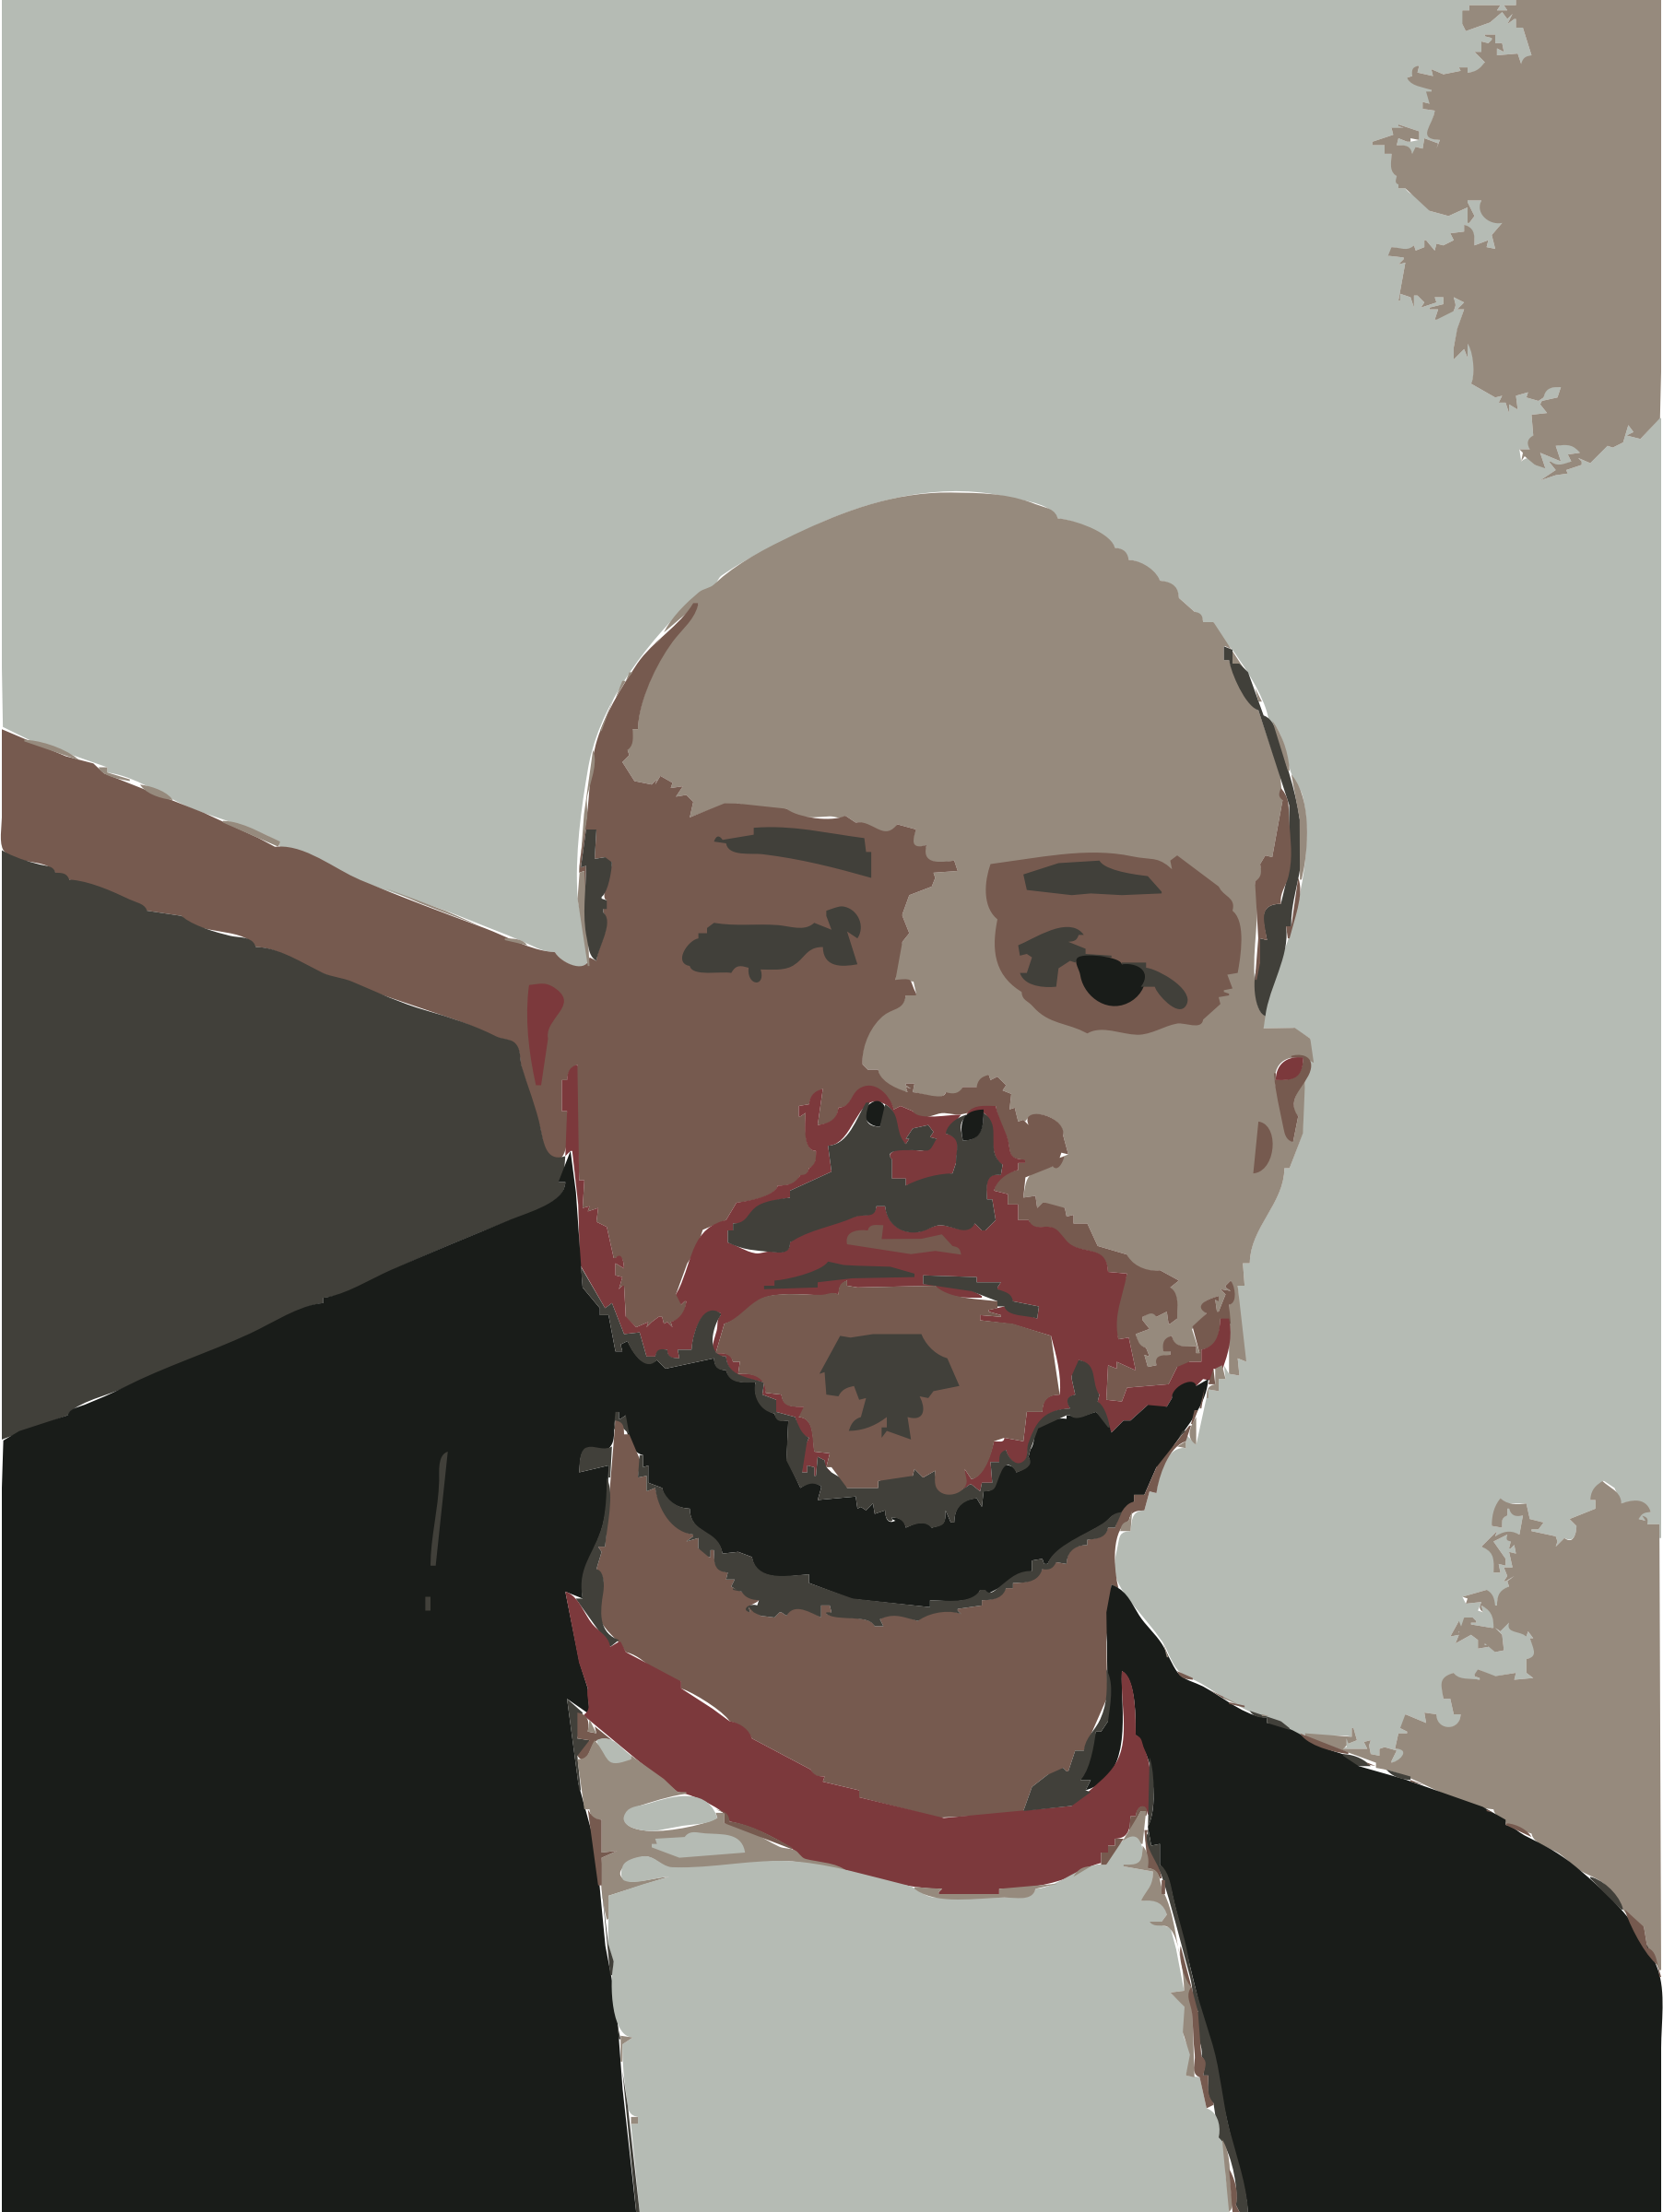 Rejon with beard avatar by rejon